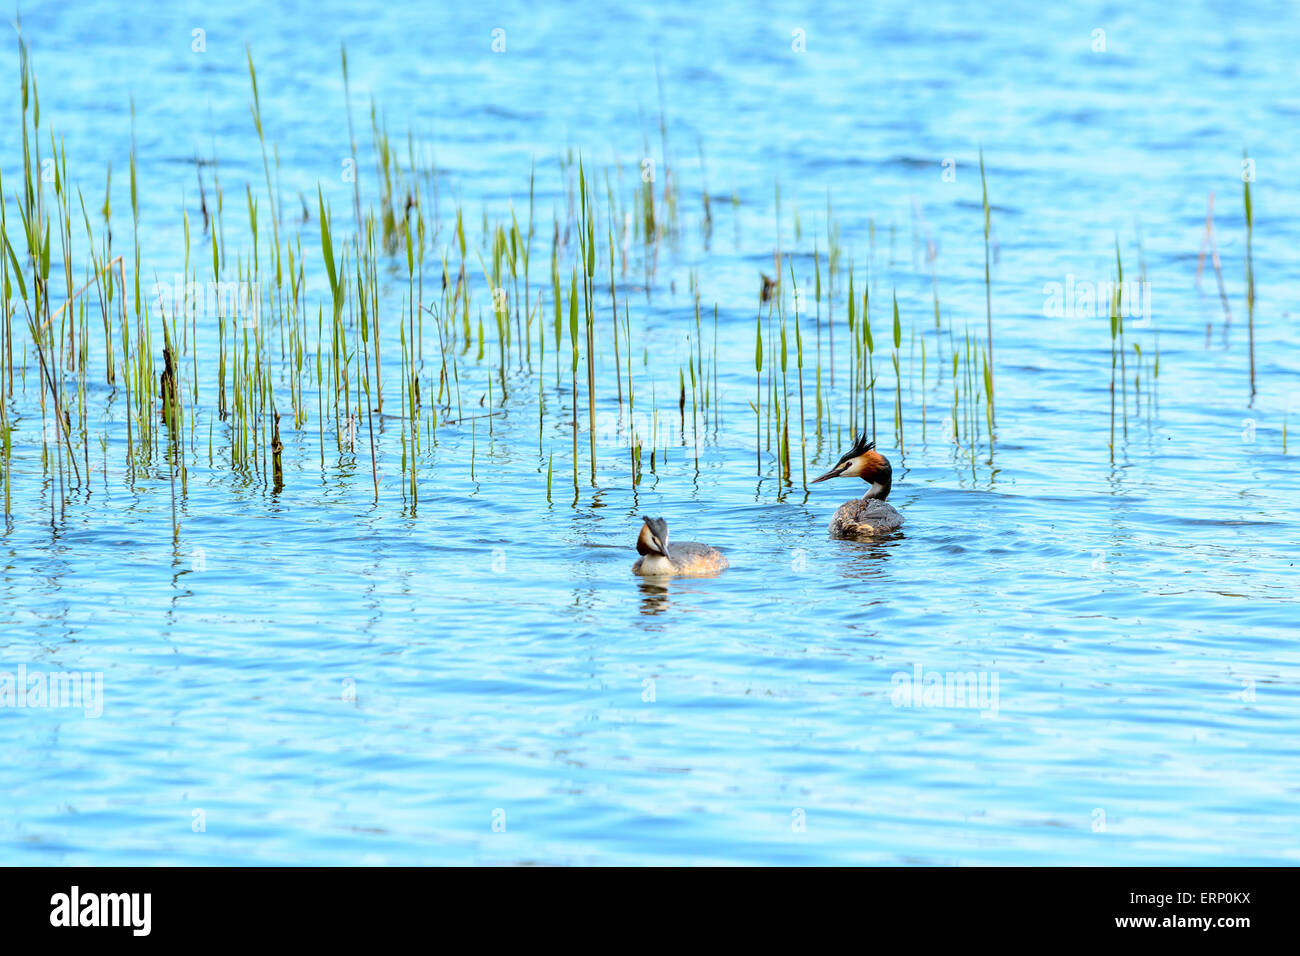 One pair of great crested grebe (Podiceps cristatus) swimming in water with reed in background. Focus on male with - Stock Image